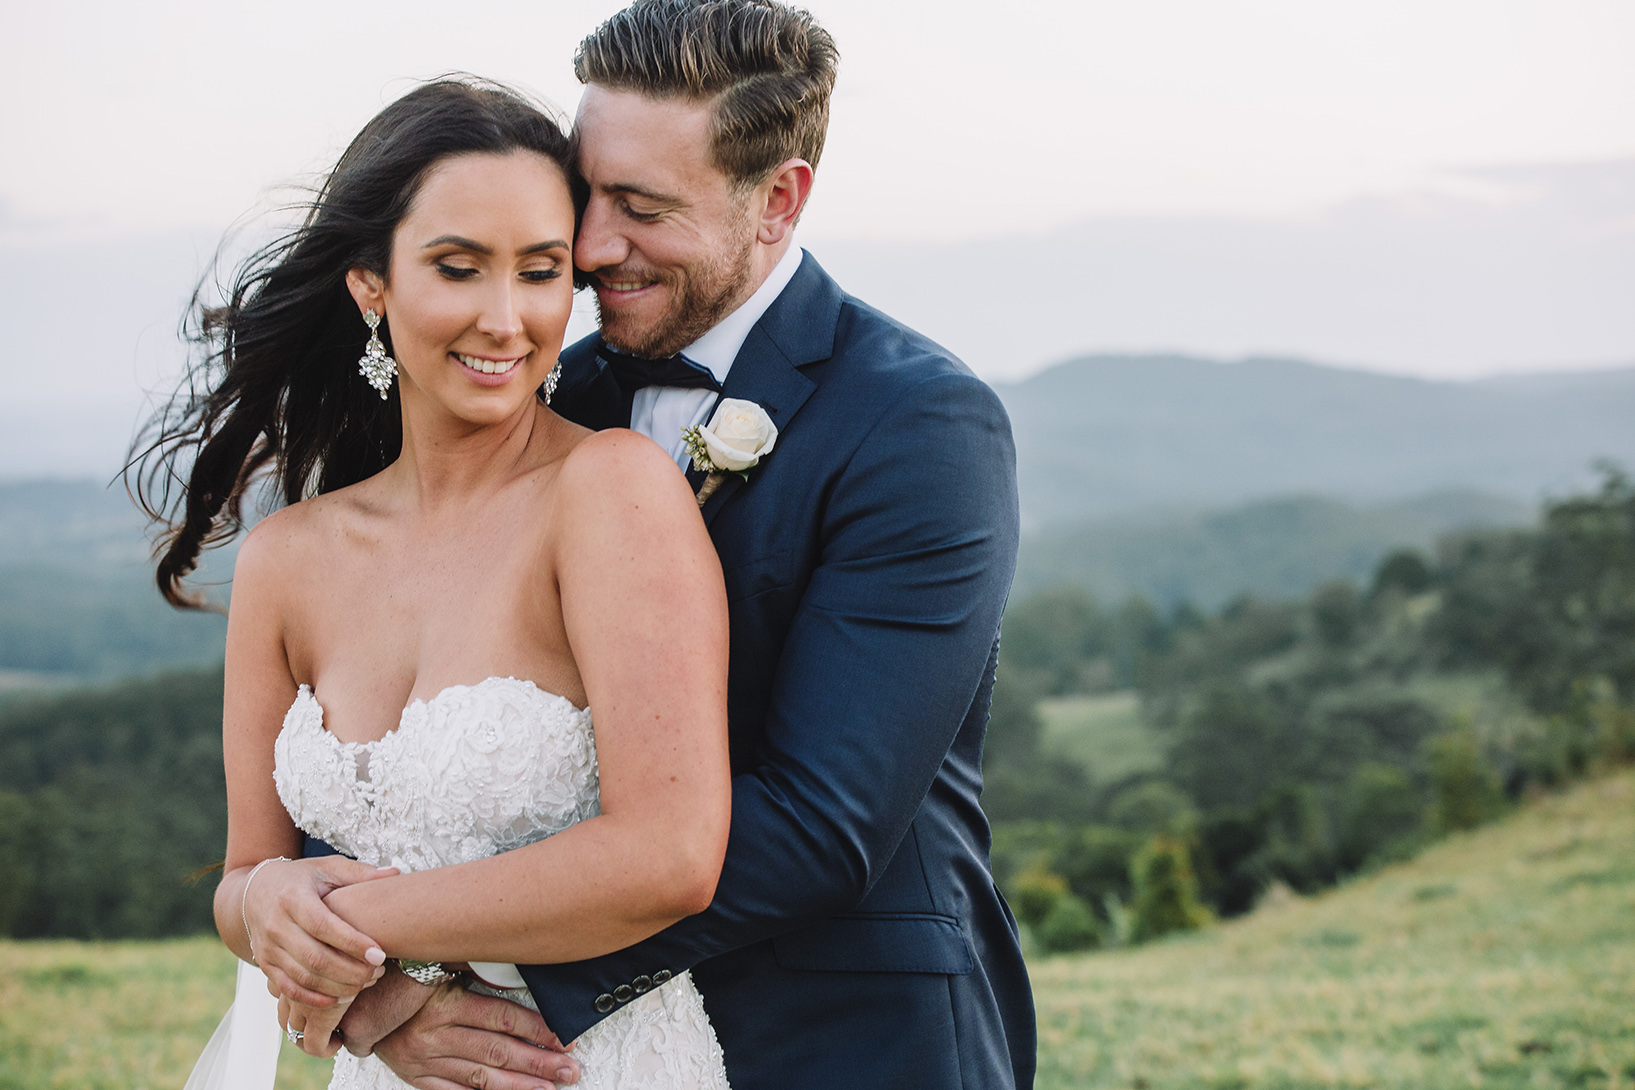 Relaxed wedding photos that capture emotions